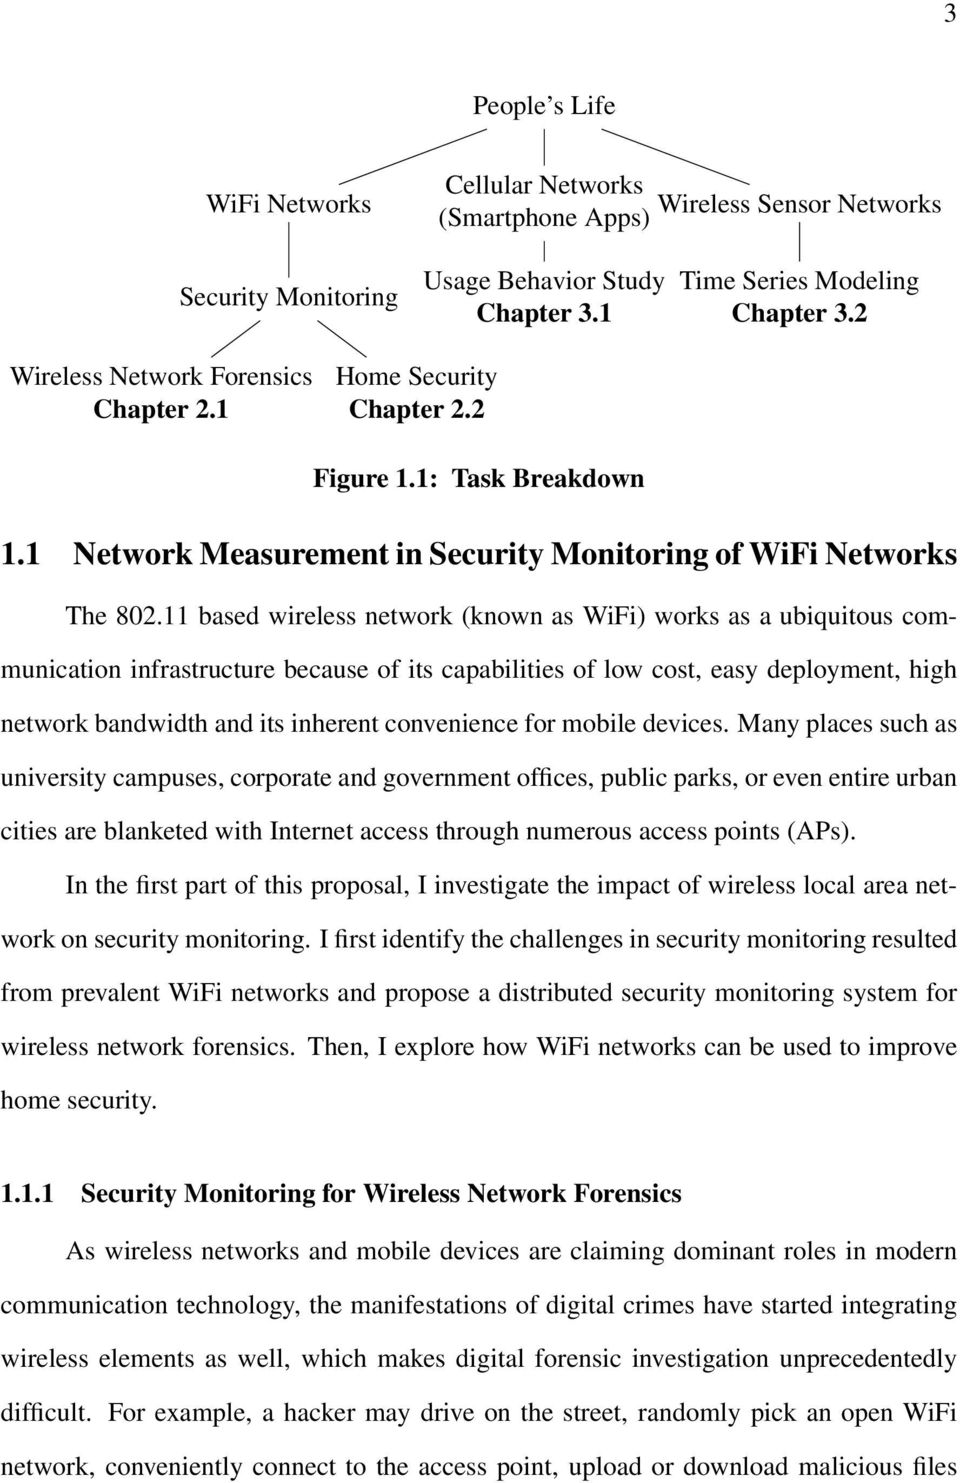 11 based wireless network (known as WiFi) works as a ubiquitous communication infrastructure because of its capabilities of low cost, easy deployment, high network bandwidth and its inherent